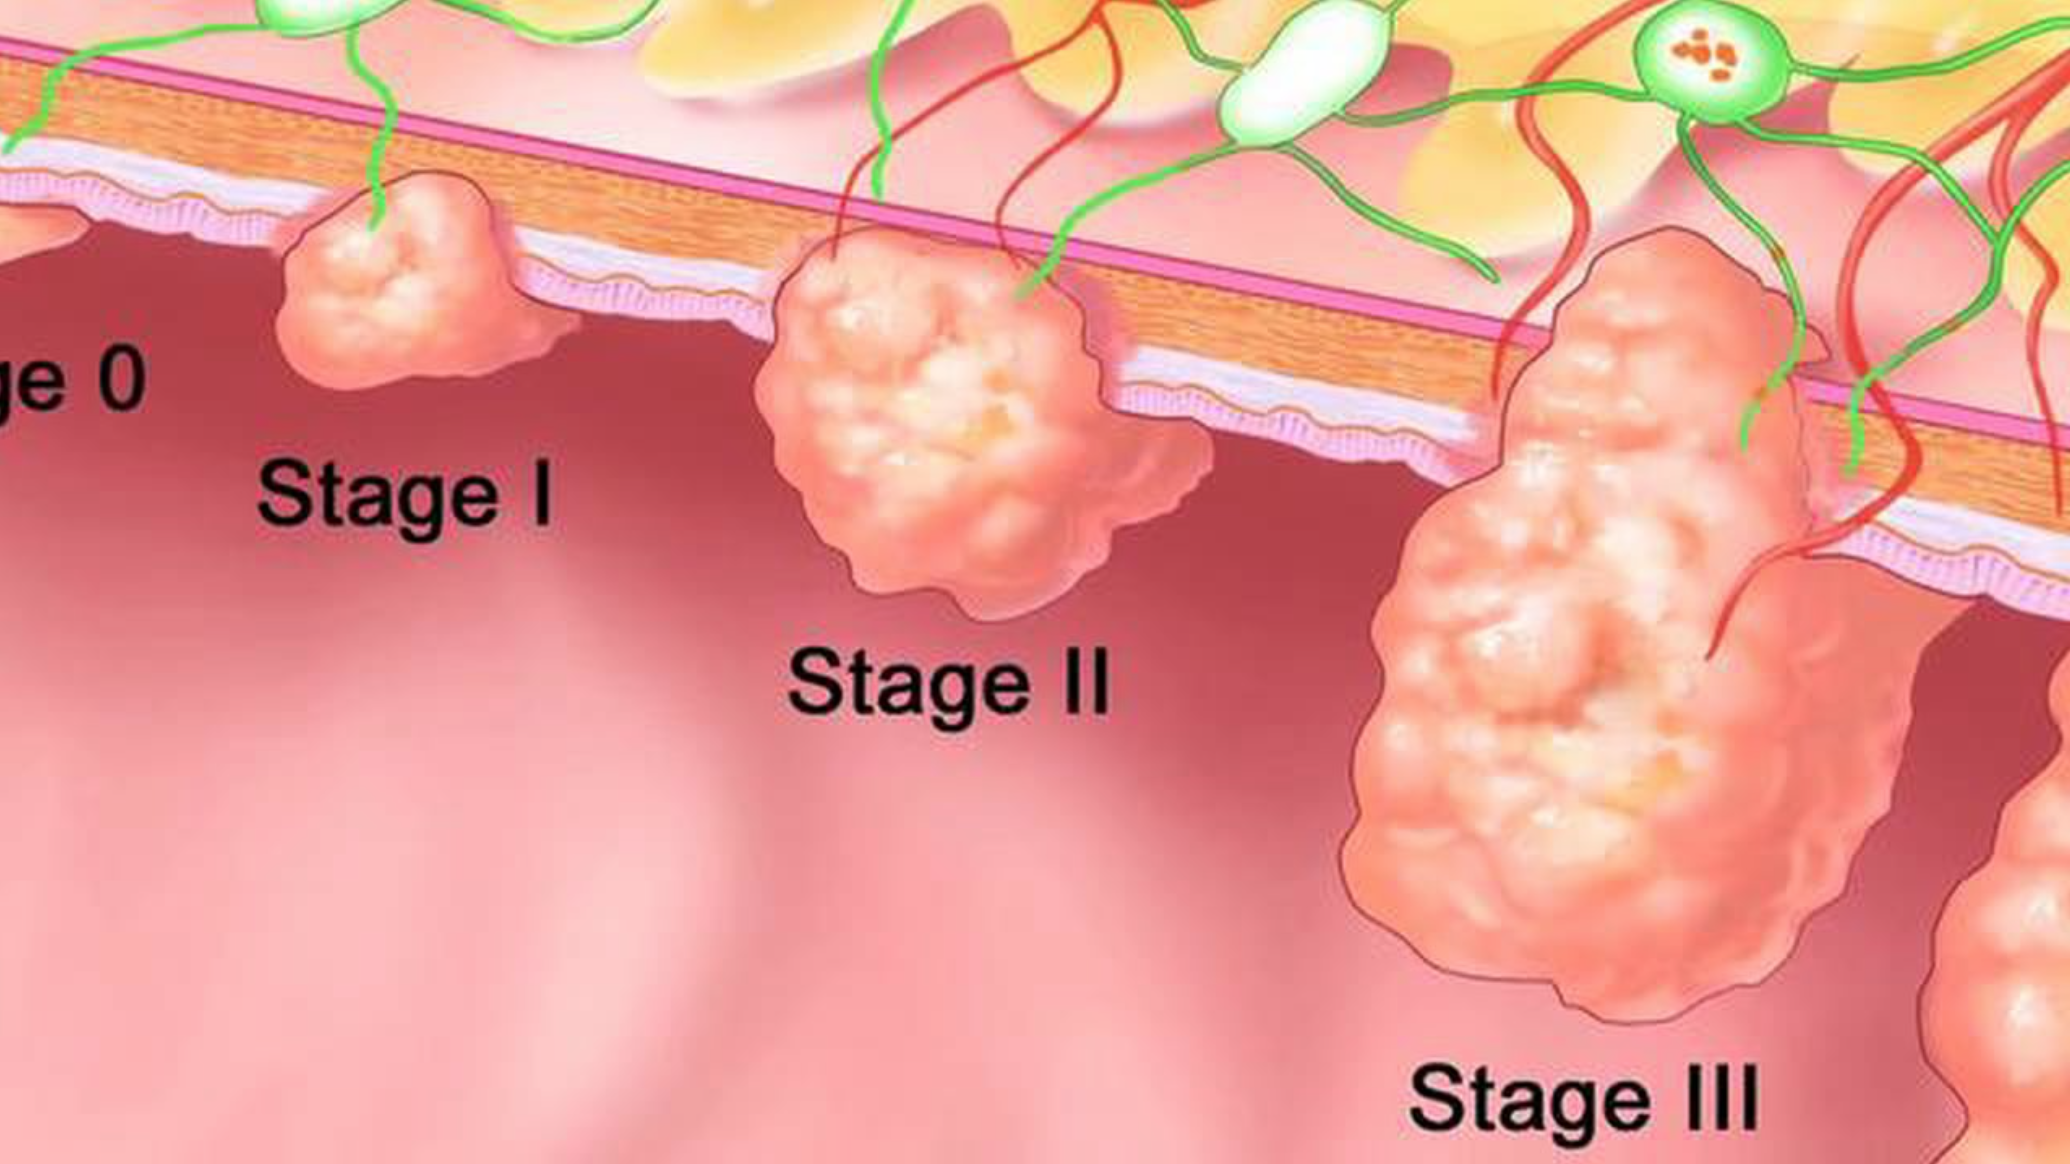 5 Tips To Finding Reliable Colon Health Information When You Need It